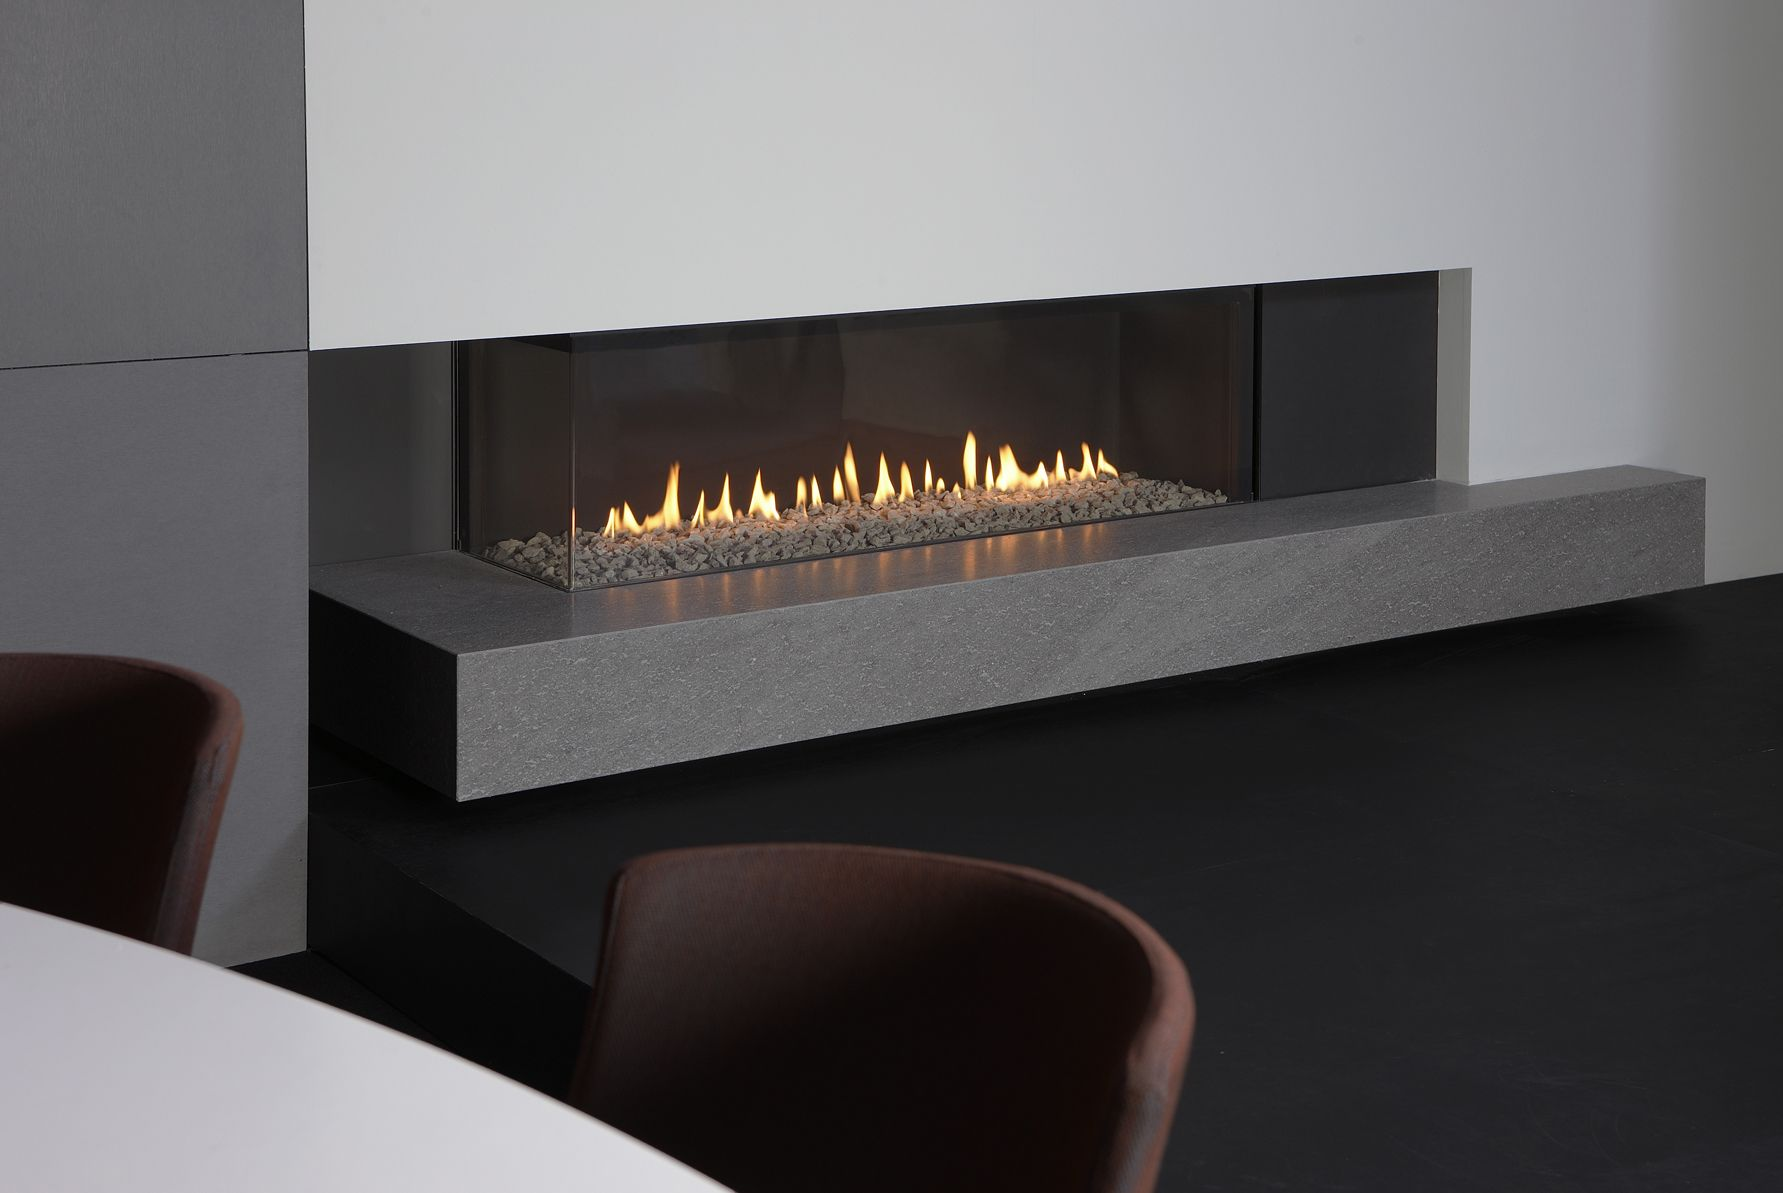 Cheminee Ethanol Gaz Foyer Gaz Unique Metalfire Pinterest Foyers Et Angles